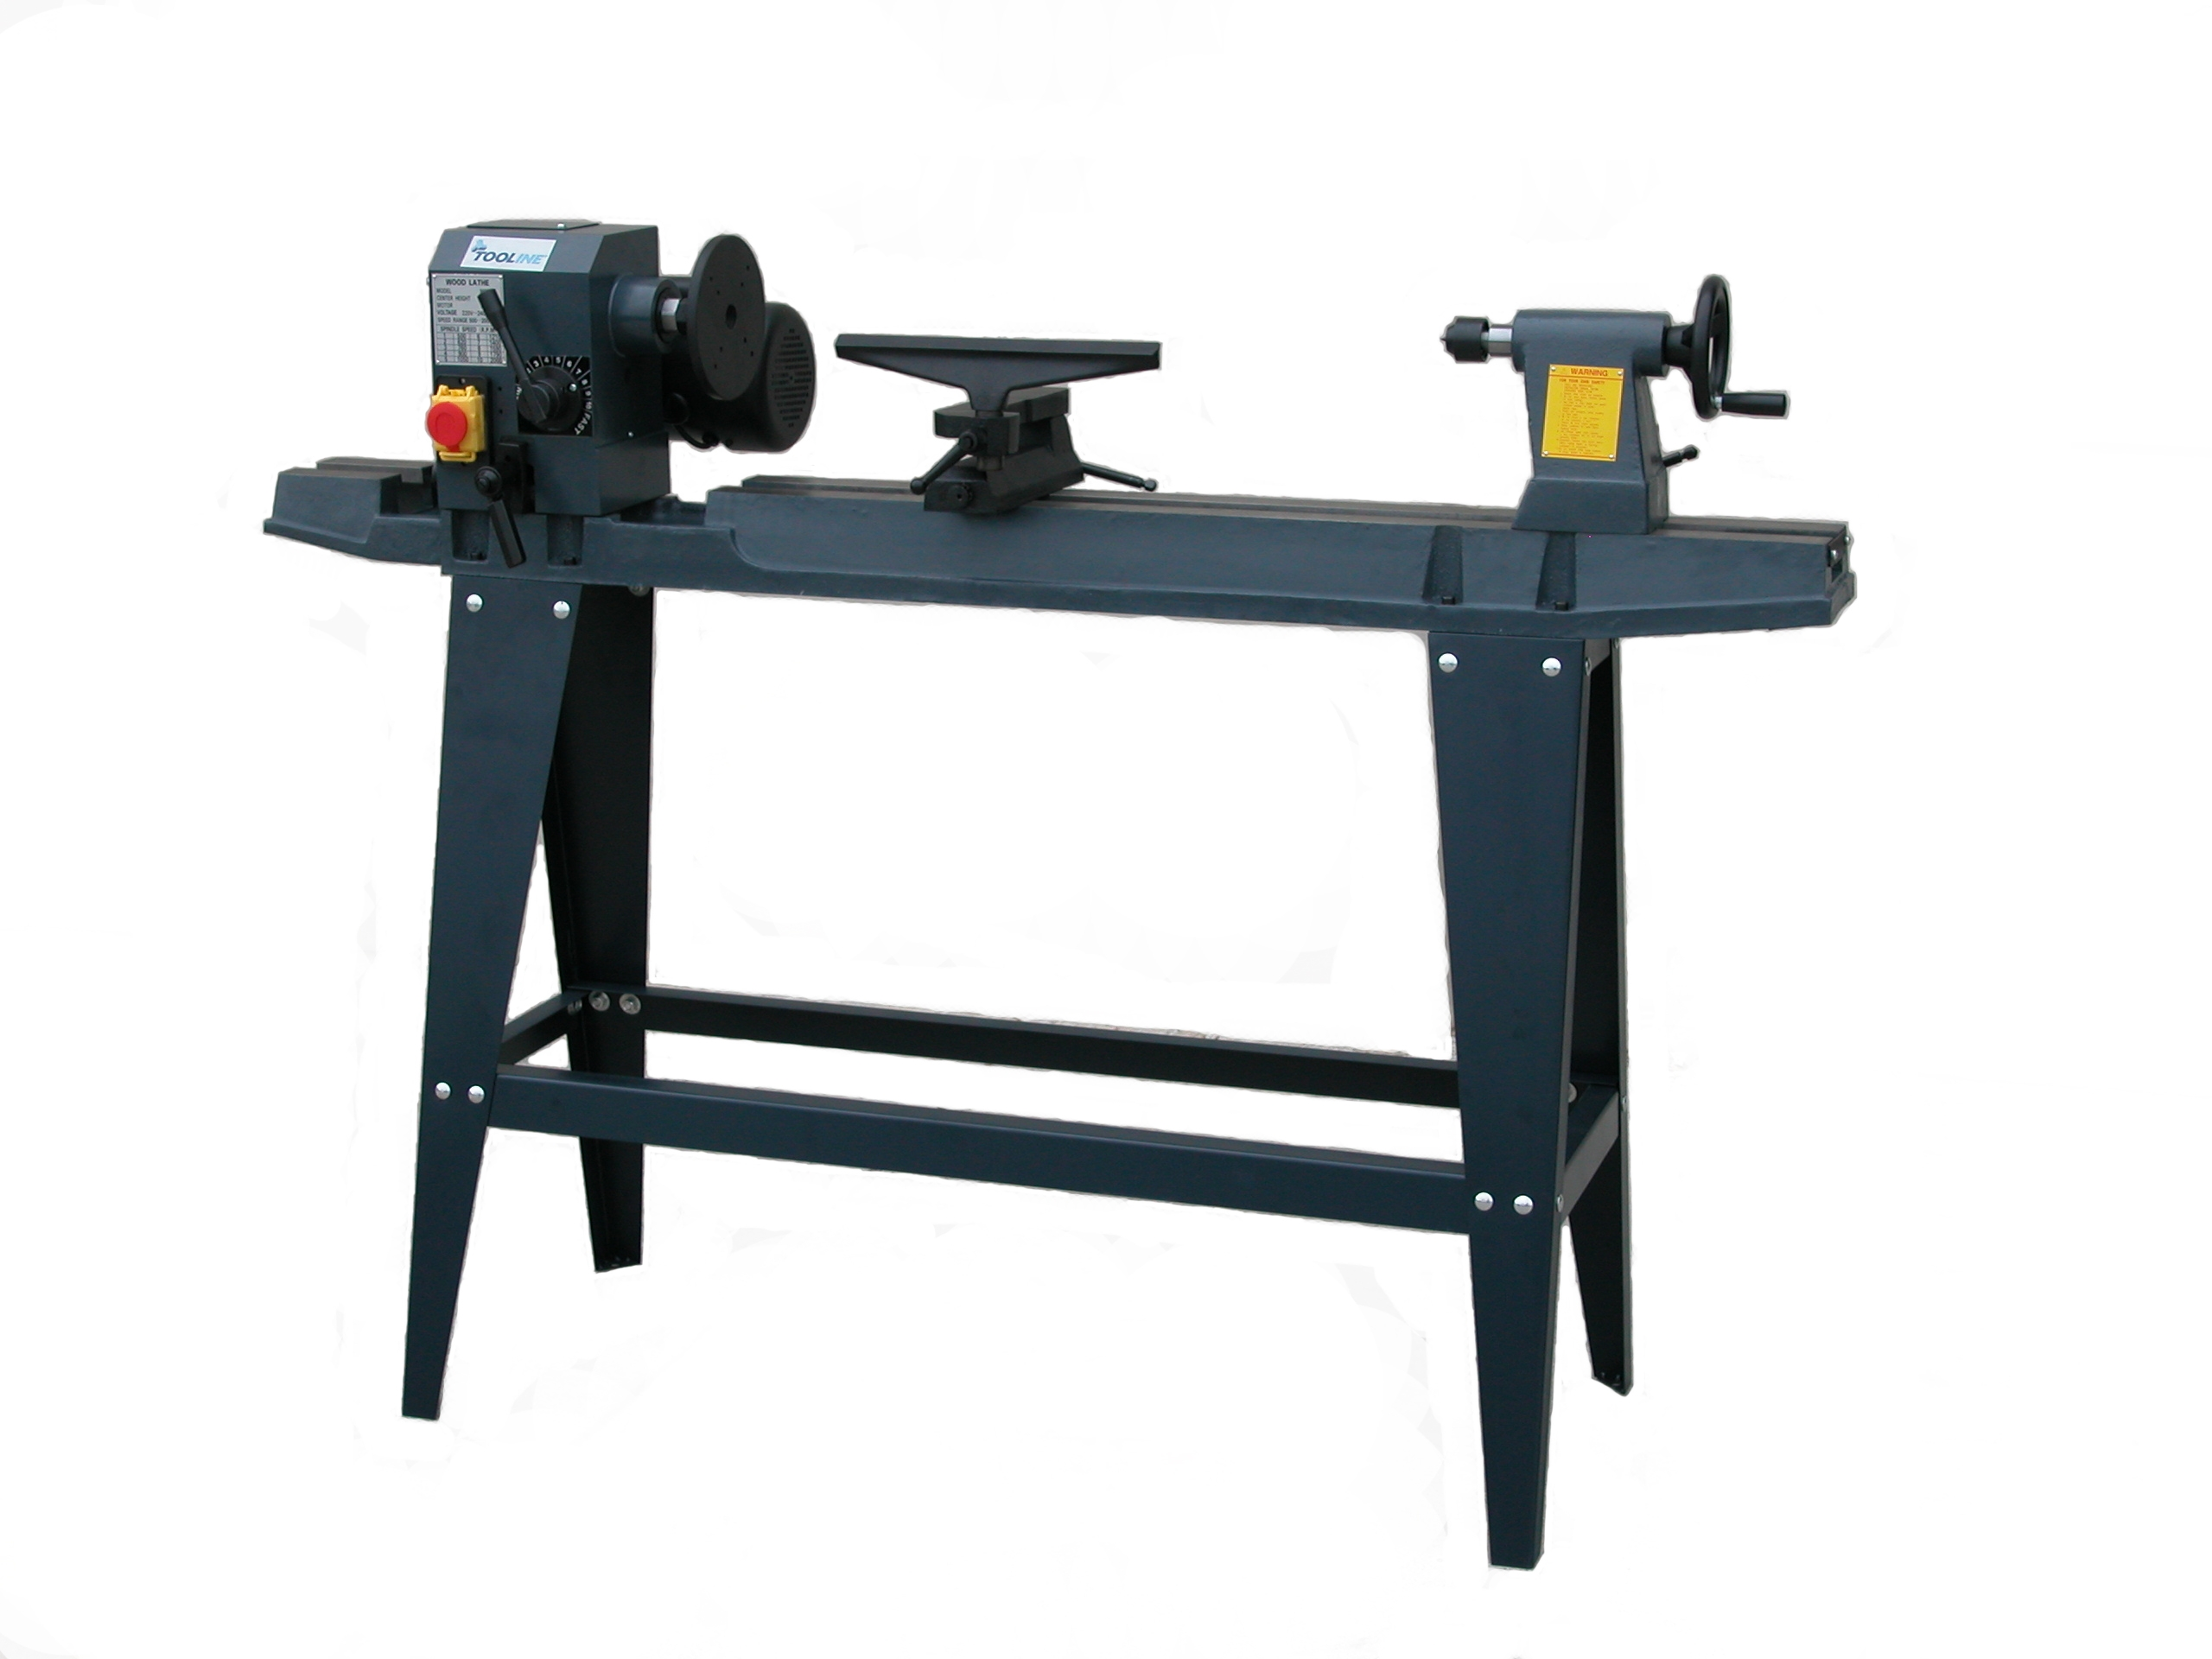 Permalink to woodworking tools online nz